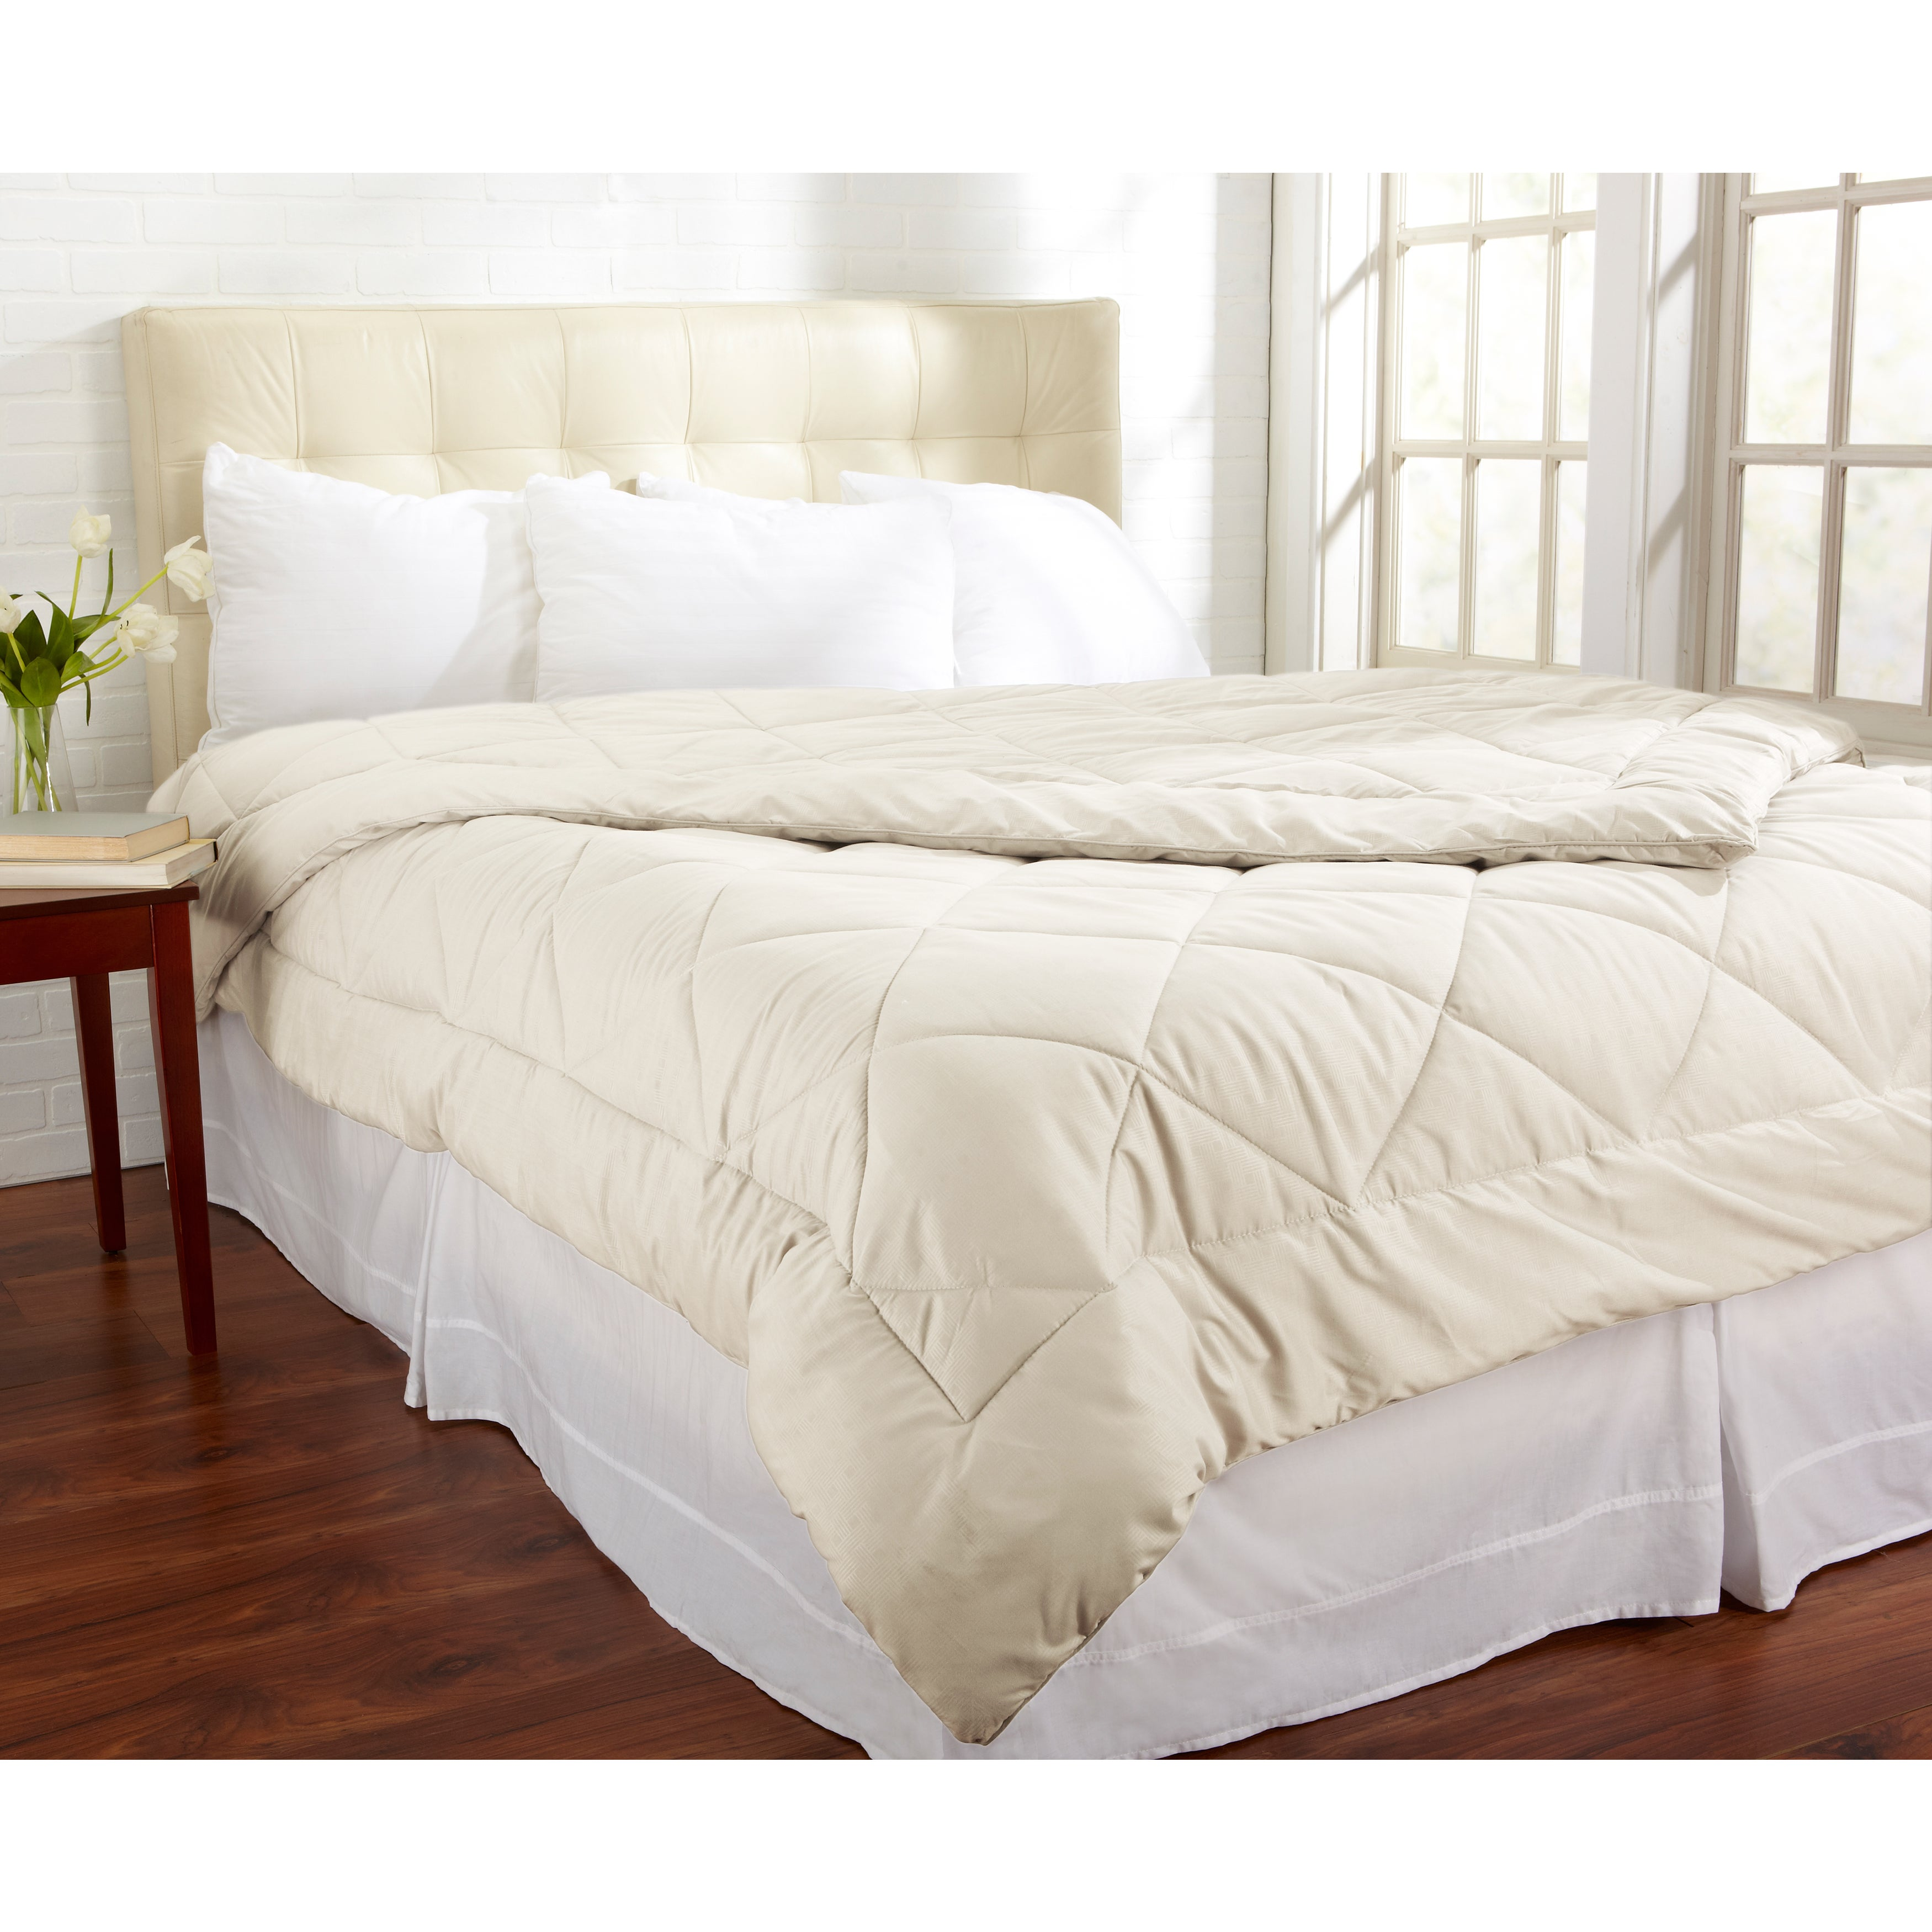 red pin natural alternative vcny queen down comforter diamond